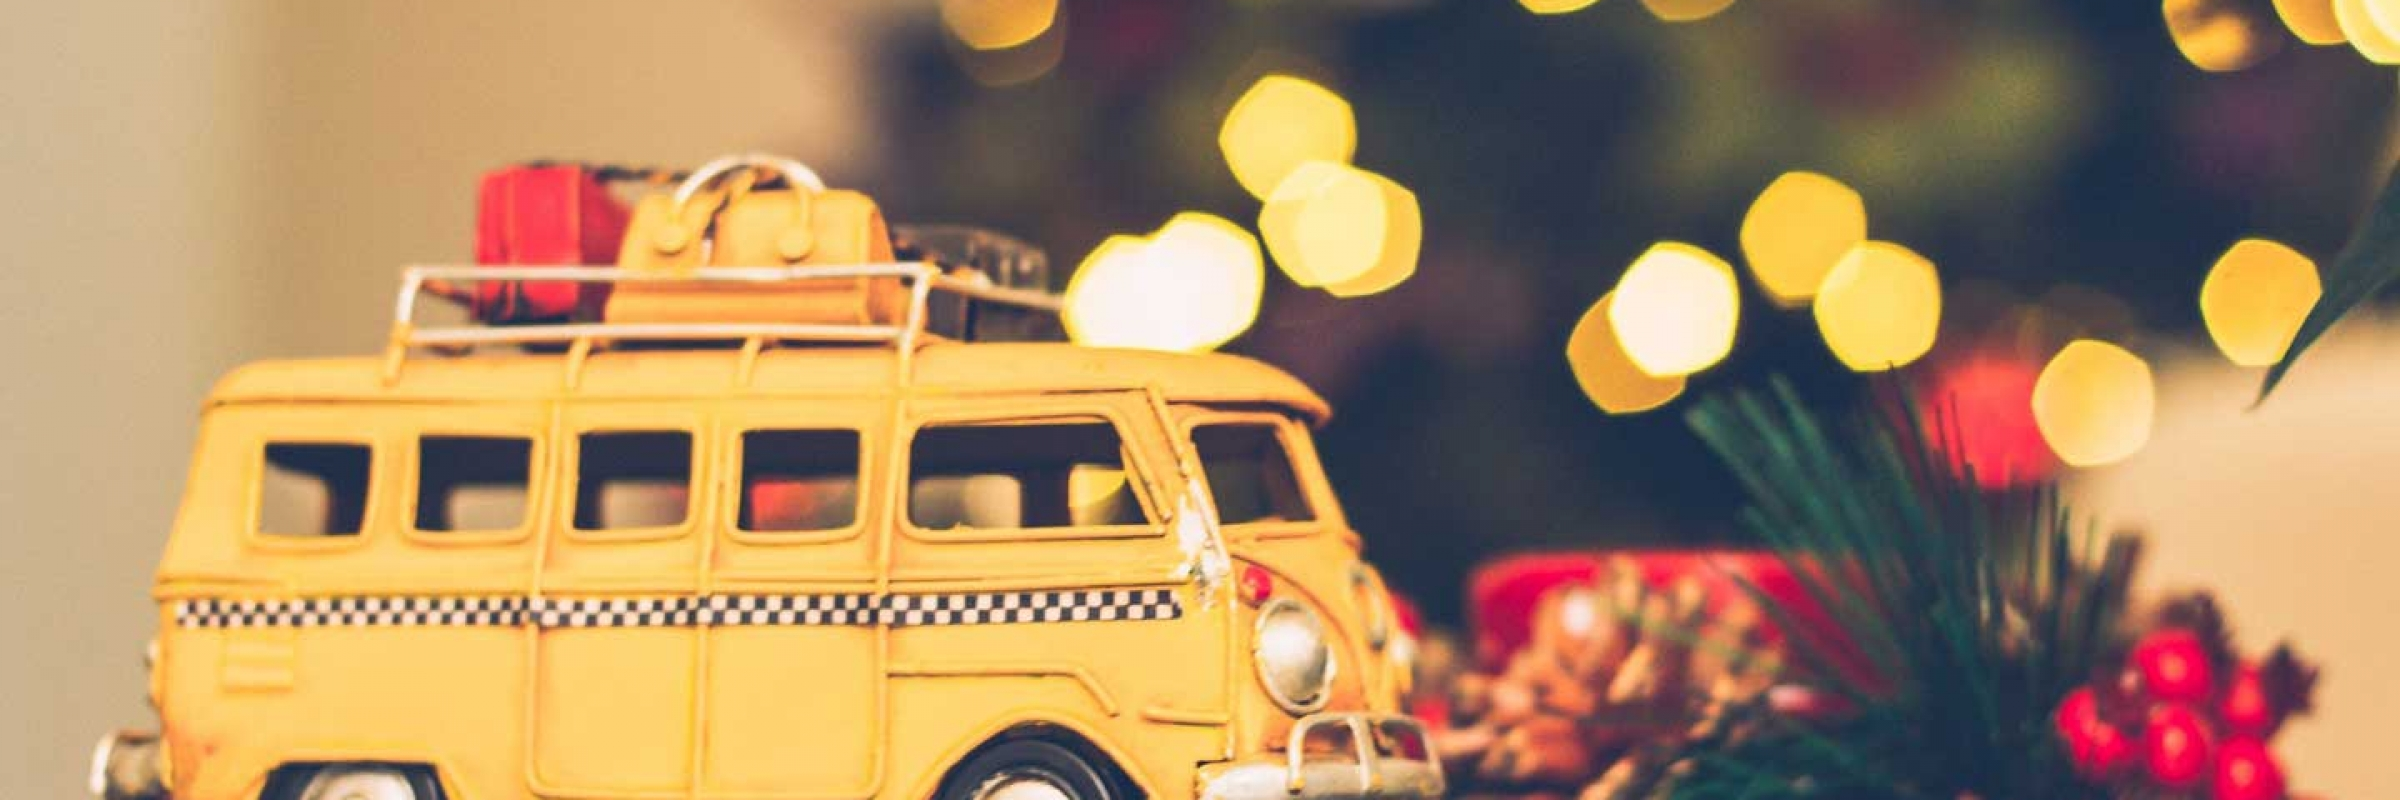 Holiday Gift Guide for Traveling Families with toy VW bus in front of Christmas Lights